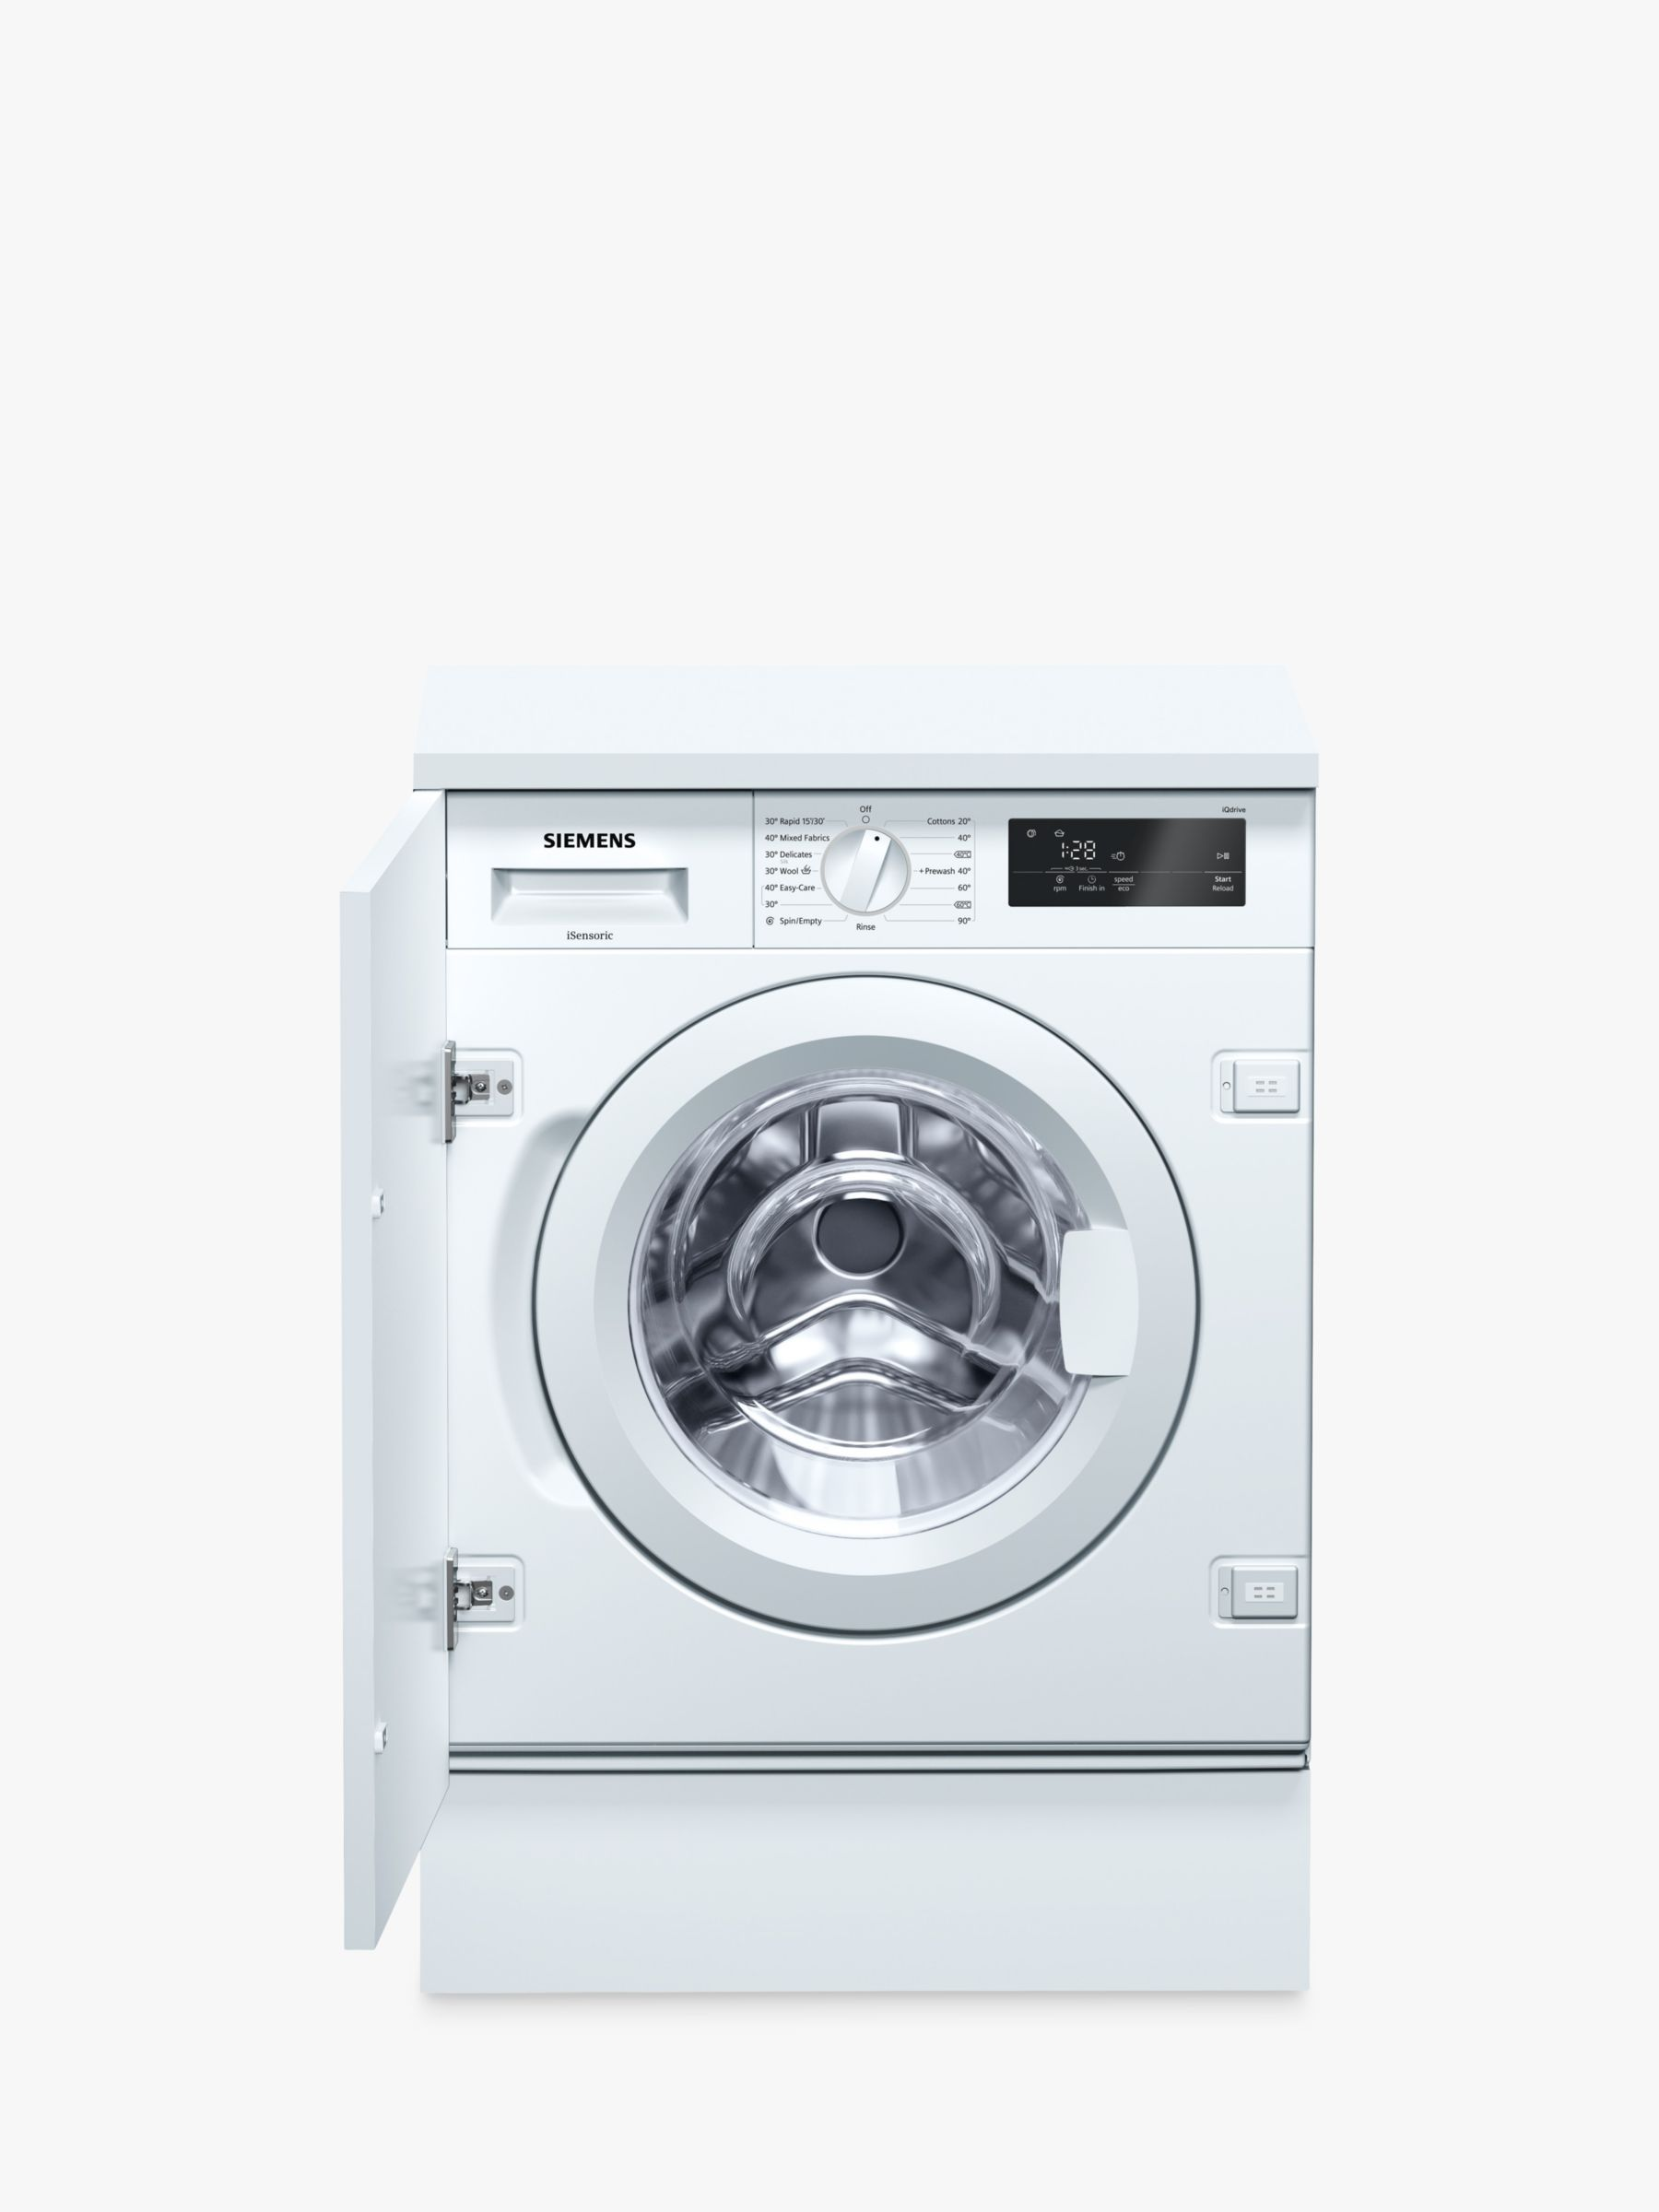 Siemens Siemens WI14W300GB Integrated Washing Machine, 8kg Load, A+++ Energy Rating, 1355rpm Spin, White